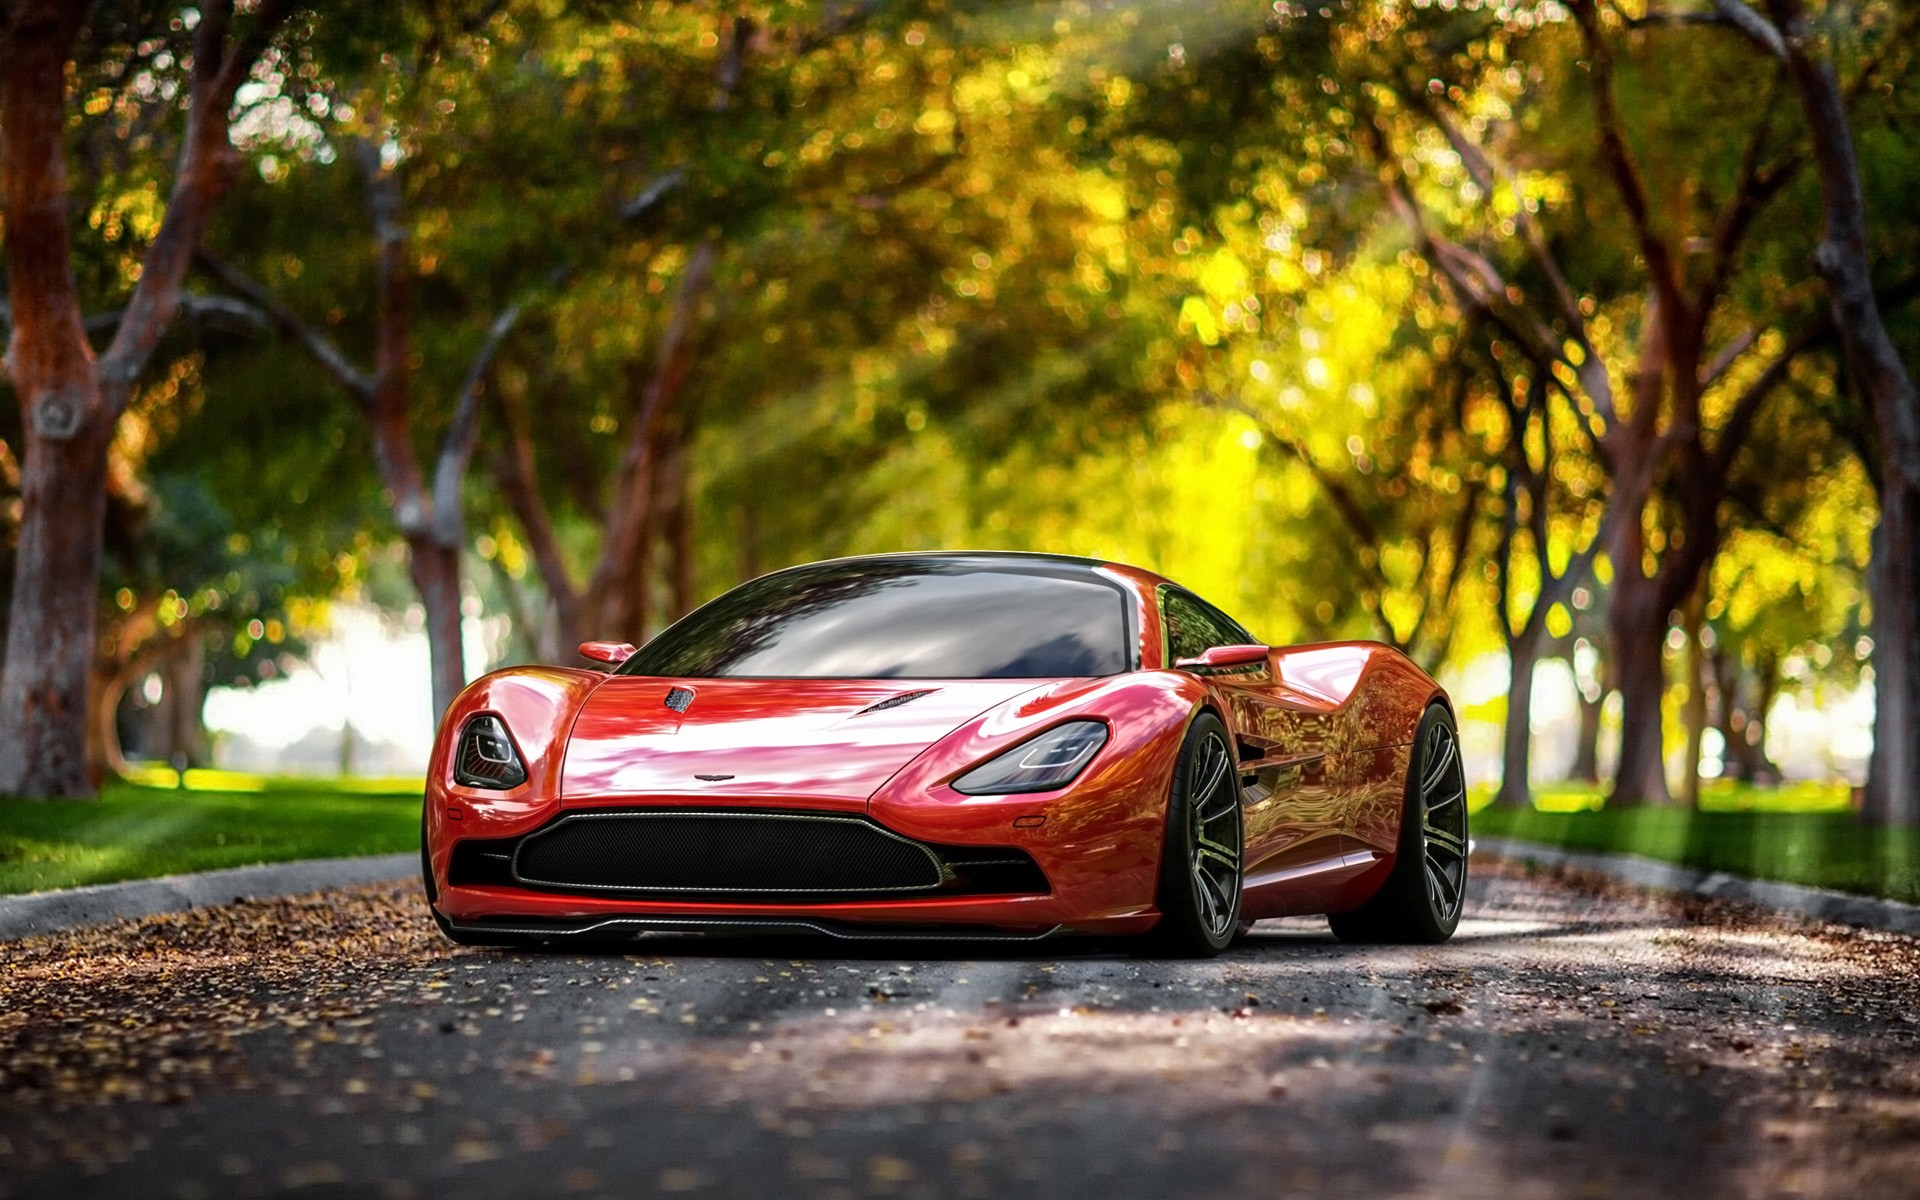 The Stunning Aston Martin DBC Concept wallpaper